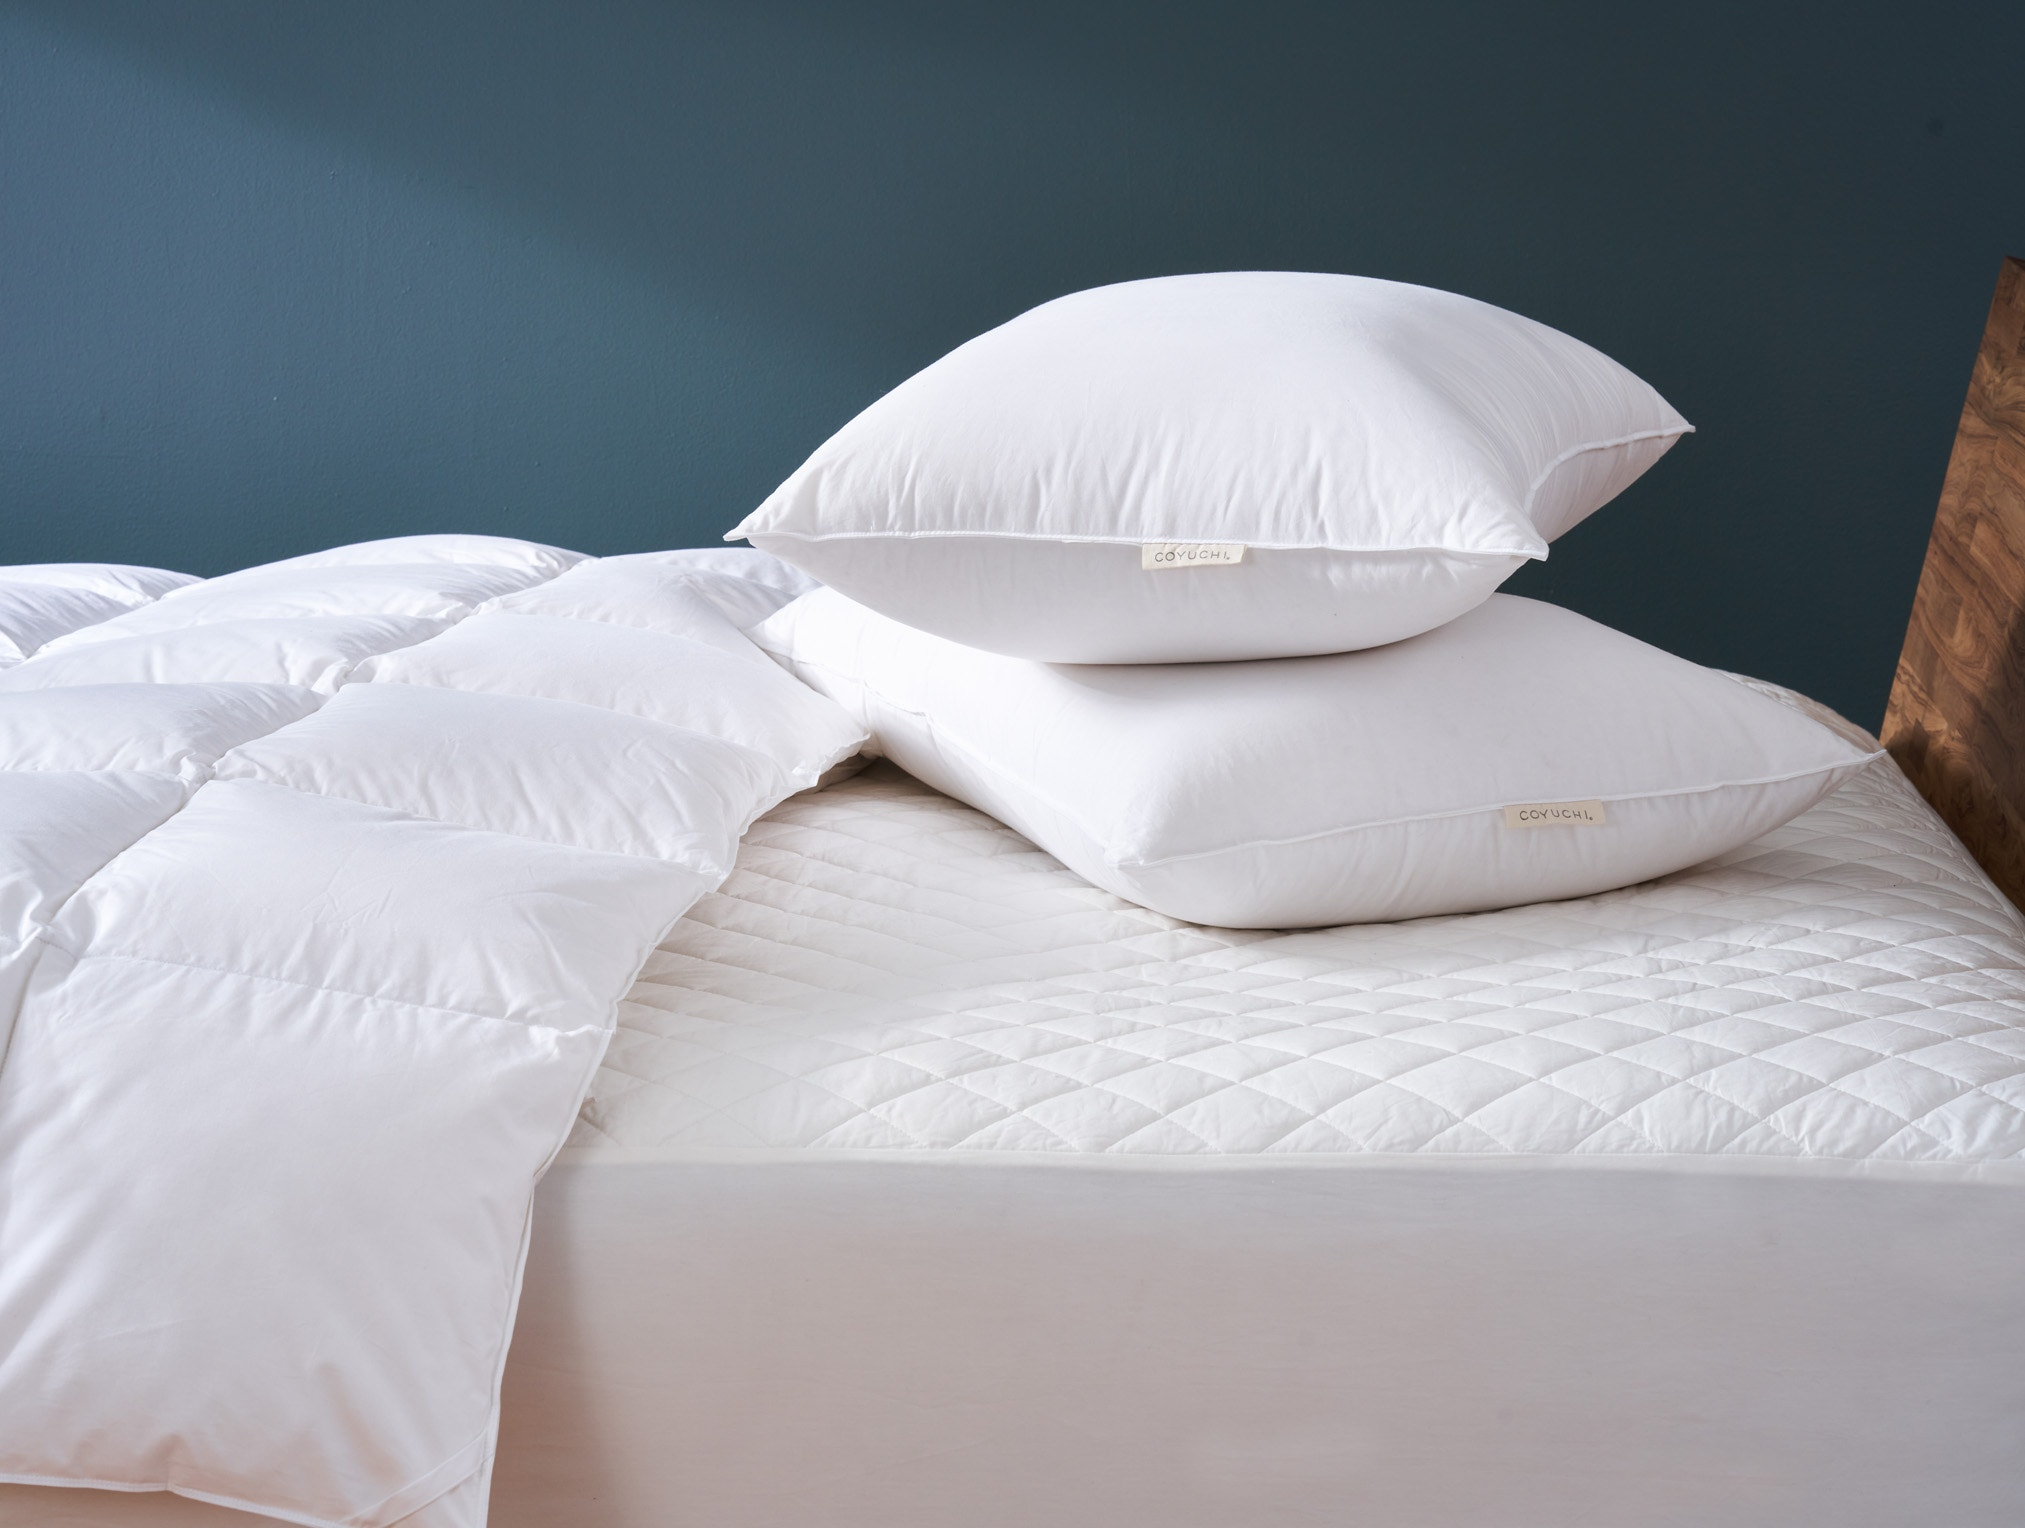 close up of mattress pad on bed